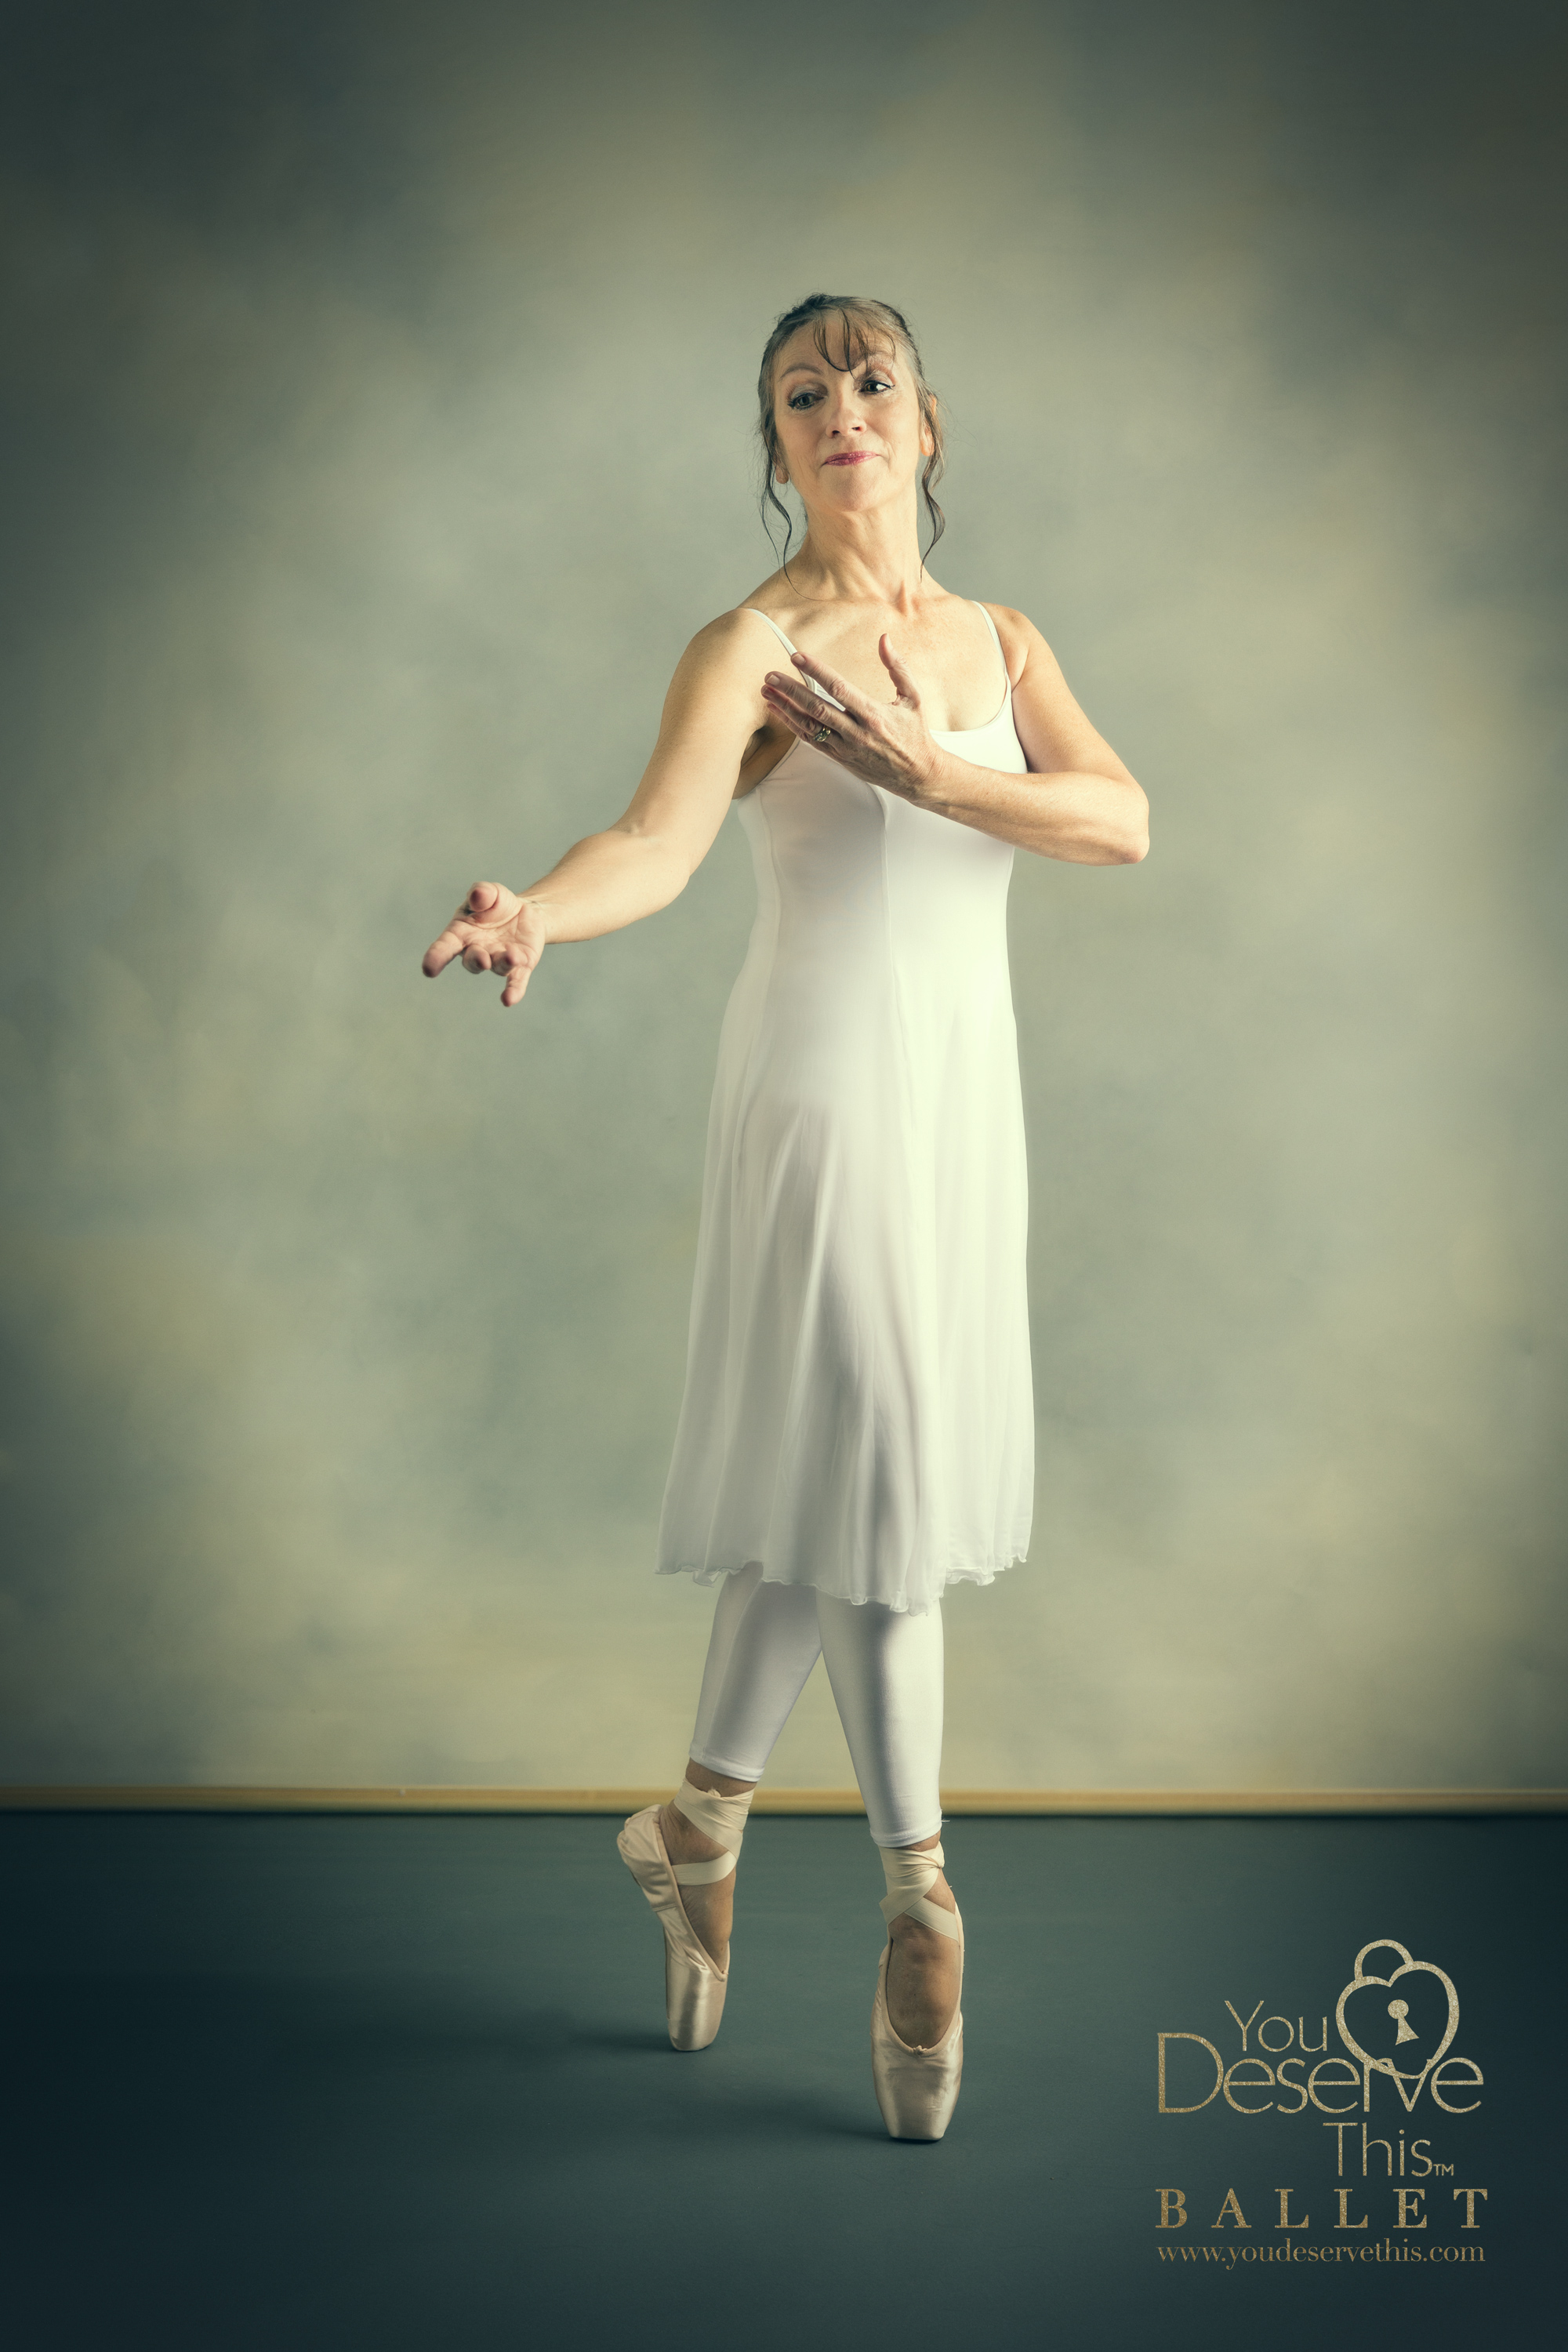 Ballet shoes, tights and up on point. Love this beautiful Ballet Photograph www.youdeservethis.com